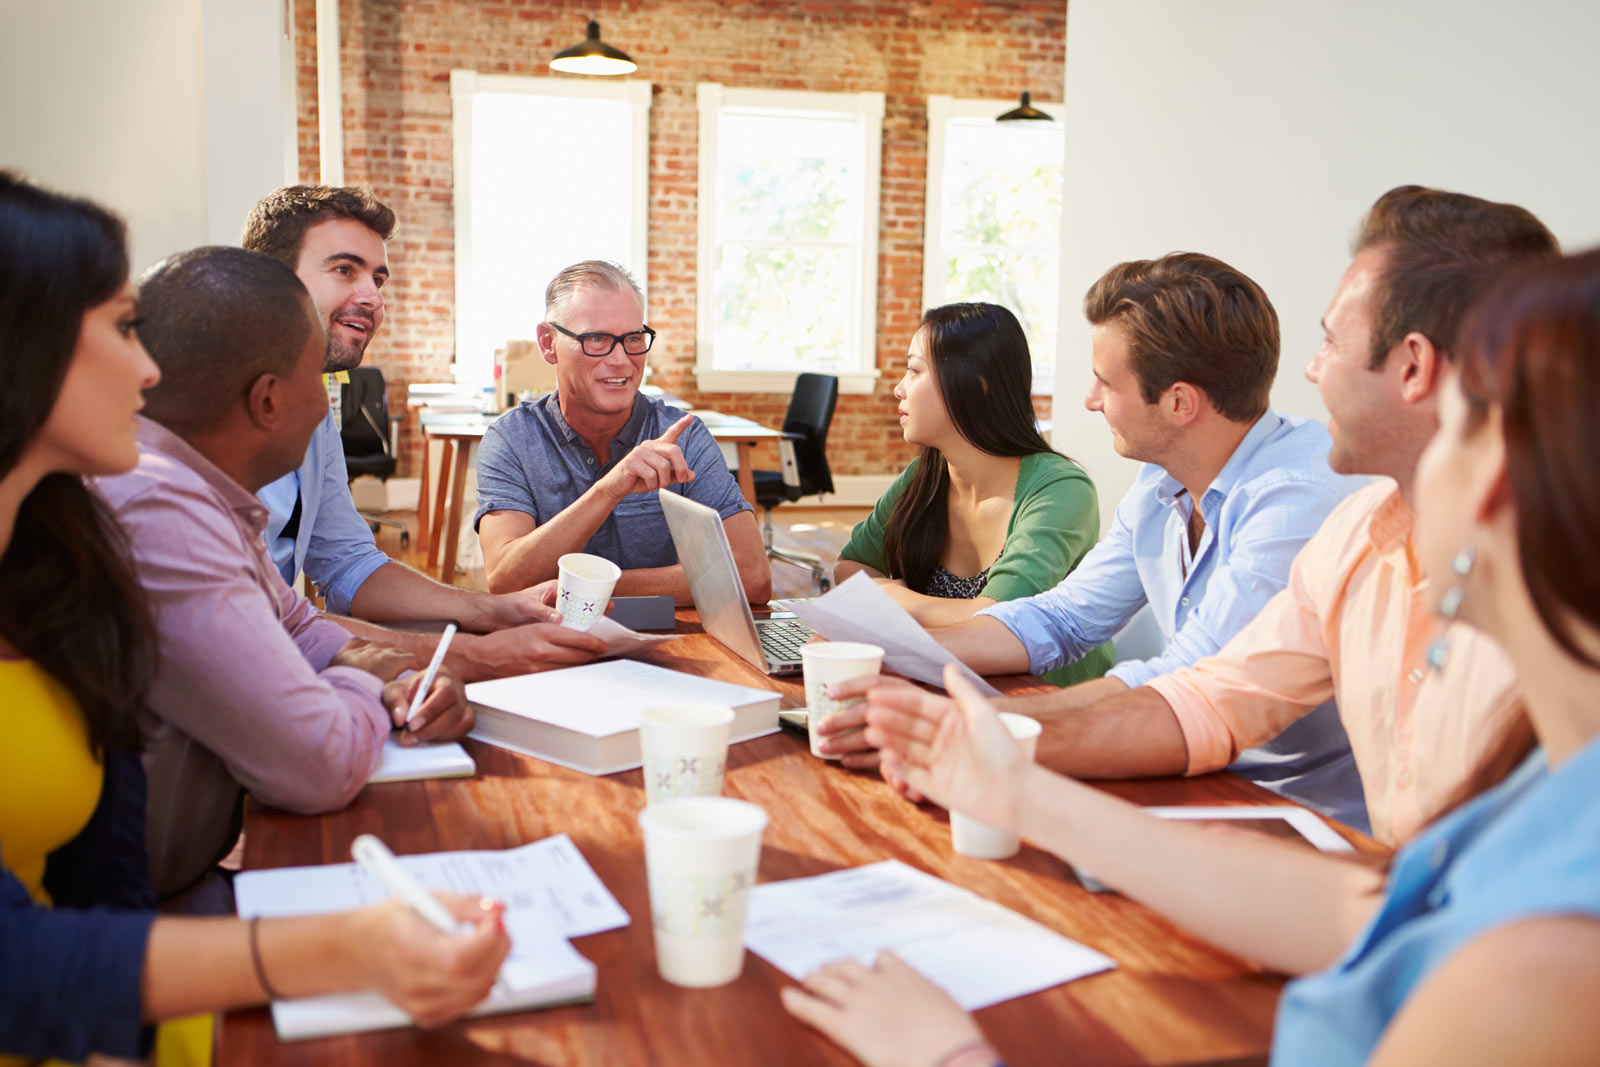 3 Foolproof Methods For Making Every Meeting Successful